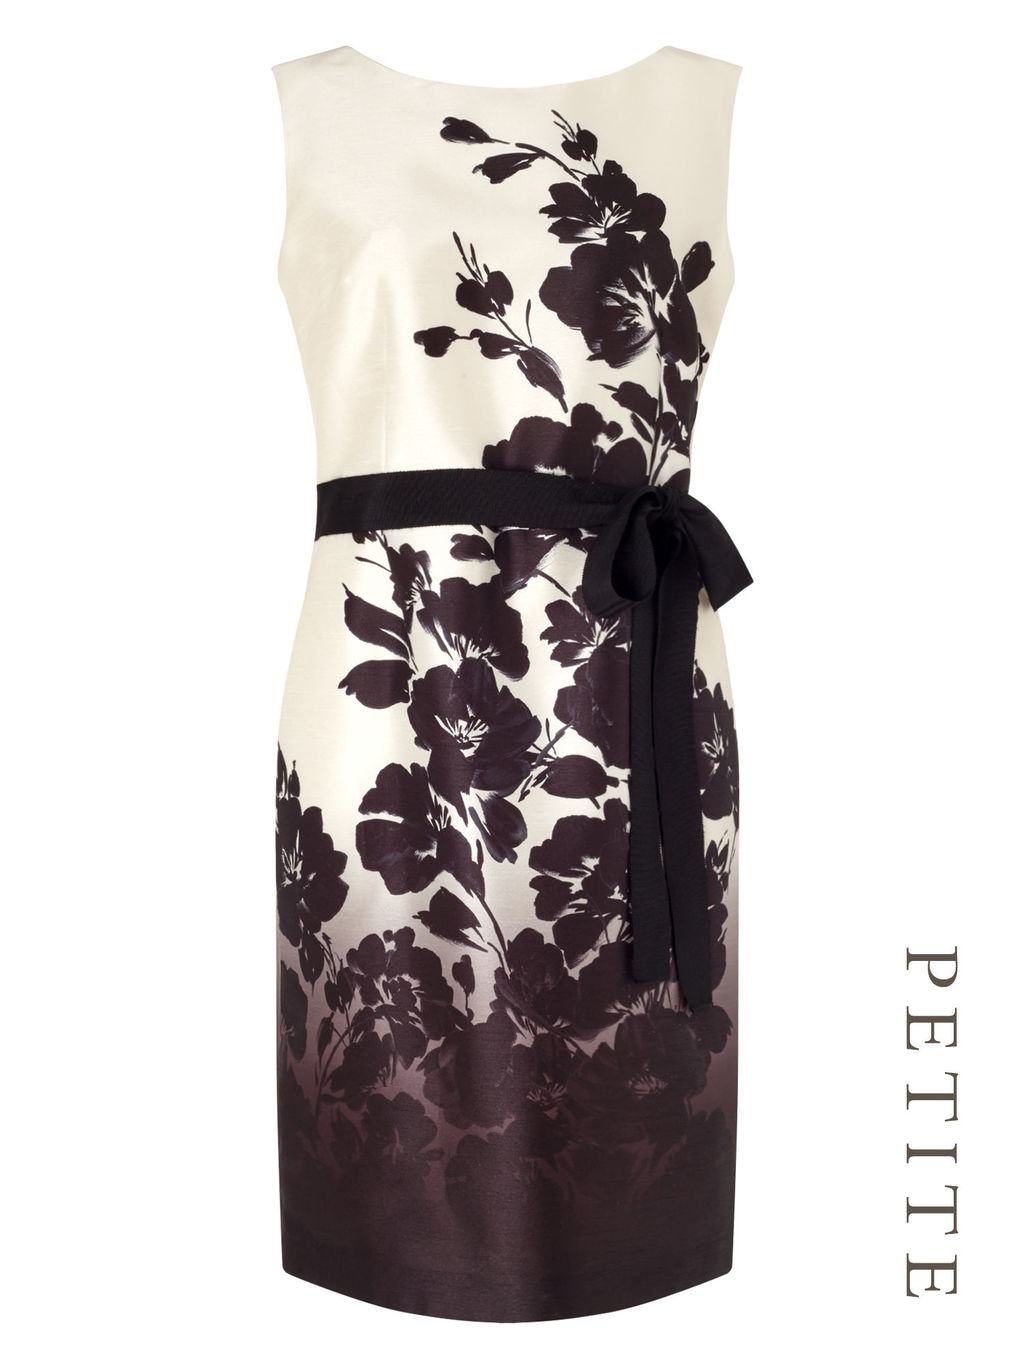 Petite Ombre Fleur Print Dress - style: shift; fit: tailored/fitted; sleeve style: sleeveless; waist detail: belted waist/tie at waist/drawstring; predominant colour: ivory/cream; secondary colour: black; occasions: evening; length: just above the knee; fibres: polyester/polyamide - 100%; neckline: crew; sleeve length: sleeveless; trends: monochrome; texture group: structured shiny - satin/tafetta/silk etc.; pattern type: fabric; pattern: florals; multicoloured: multicoloured; season: s/s 2016; wardrobe: event